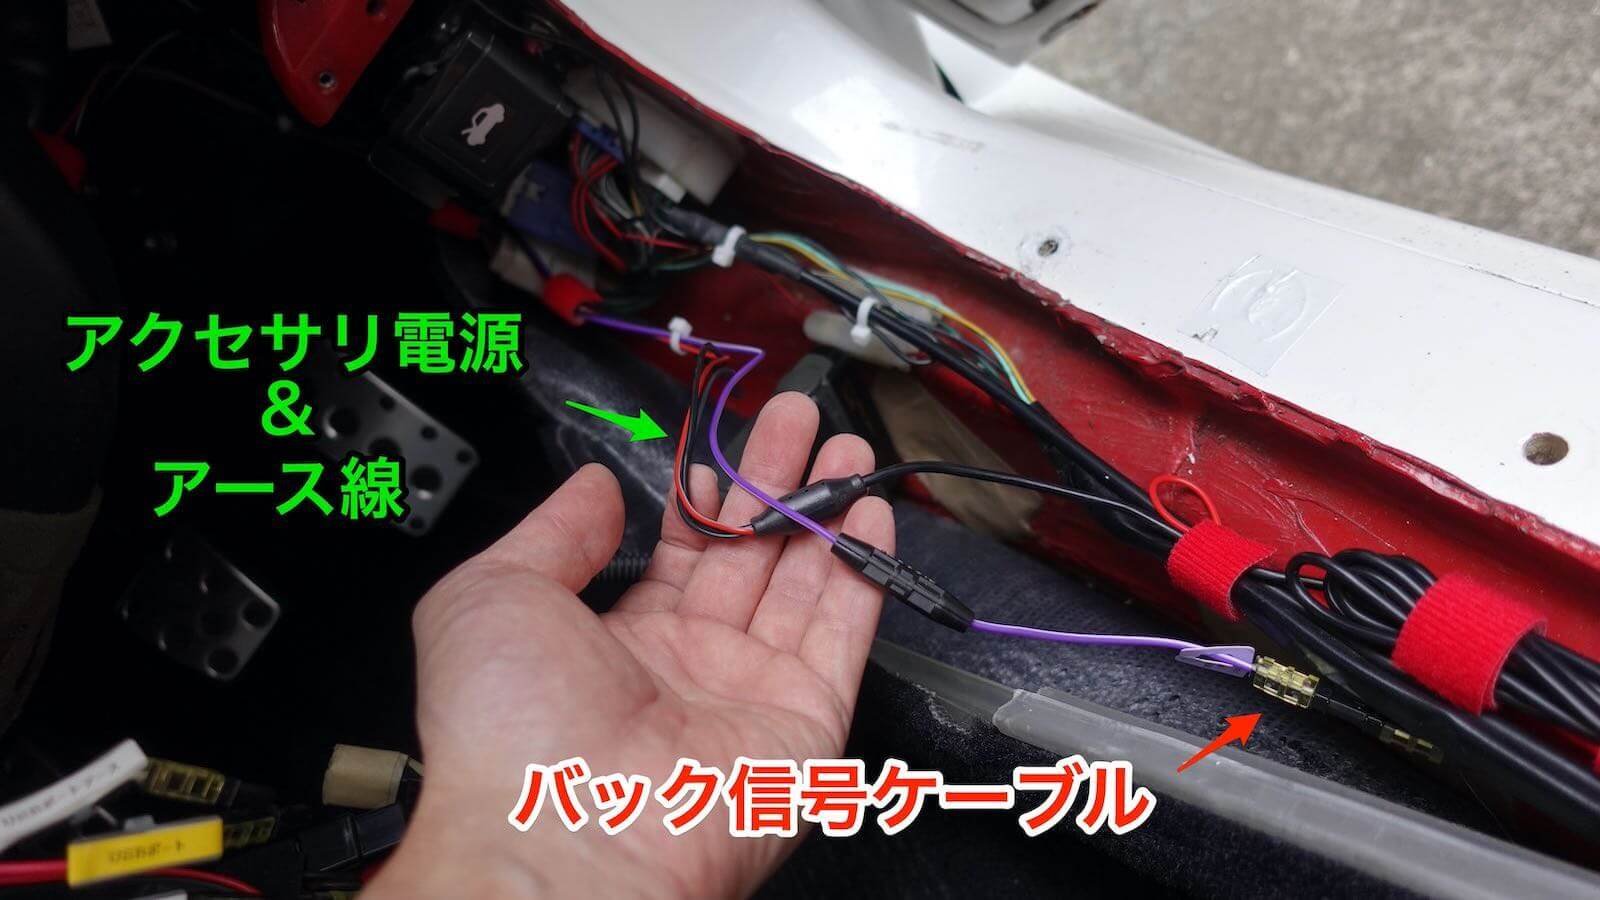 MR2 back signal joint position